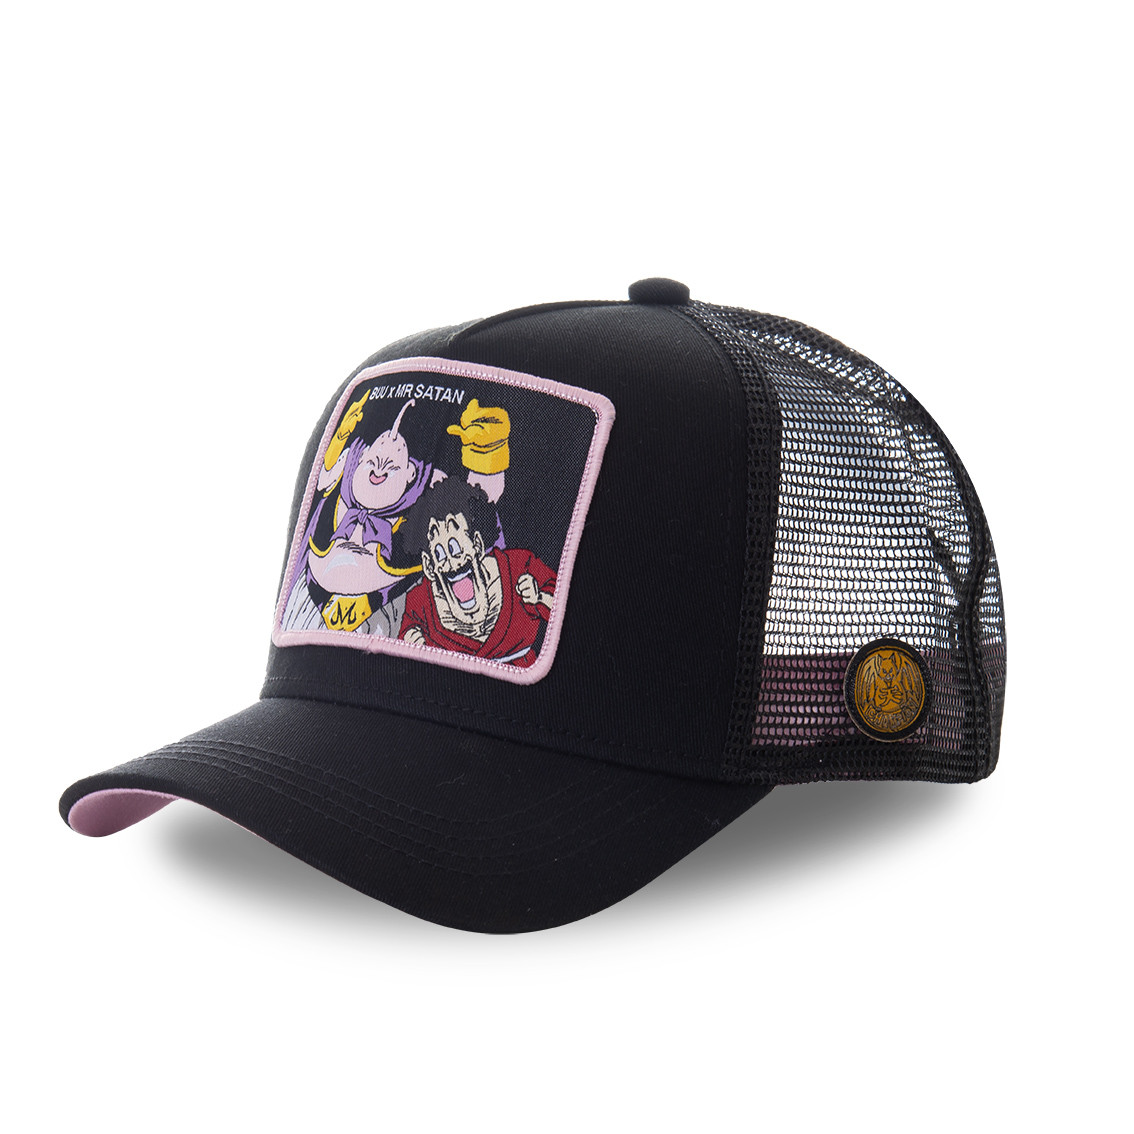 Casquette capslab dragon ball z 3 buu x mr satan noir (photo)